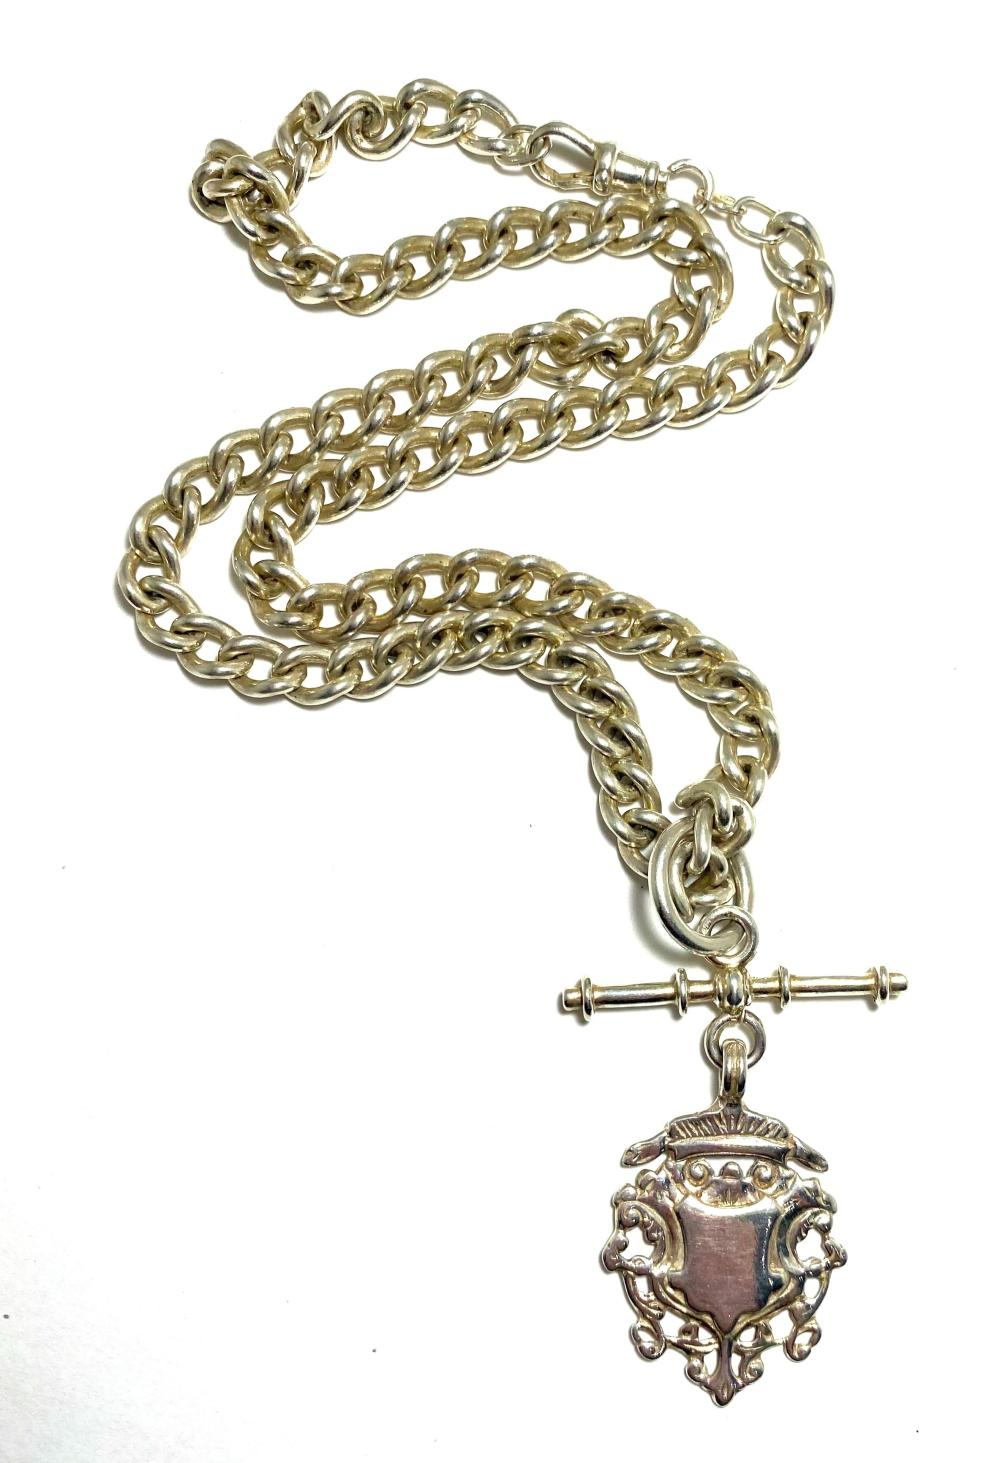 A Sterling Silver Curb Link Fob Chain with Shield